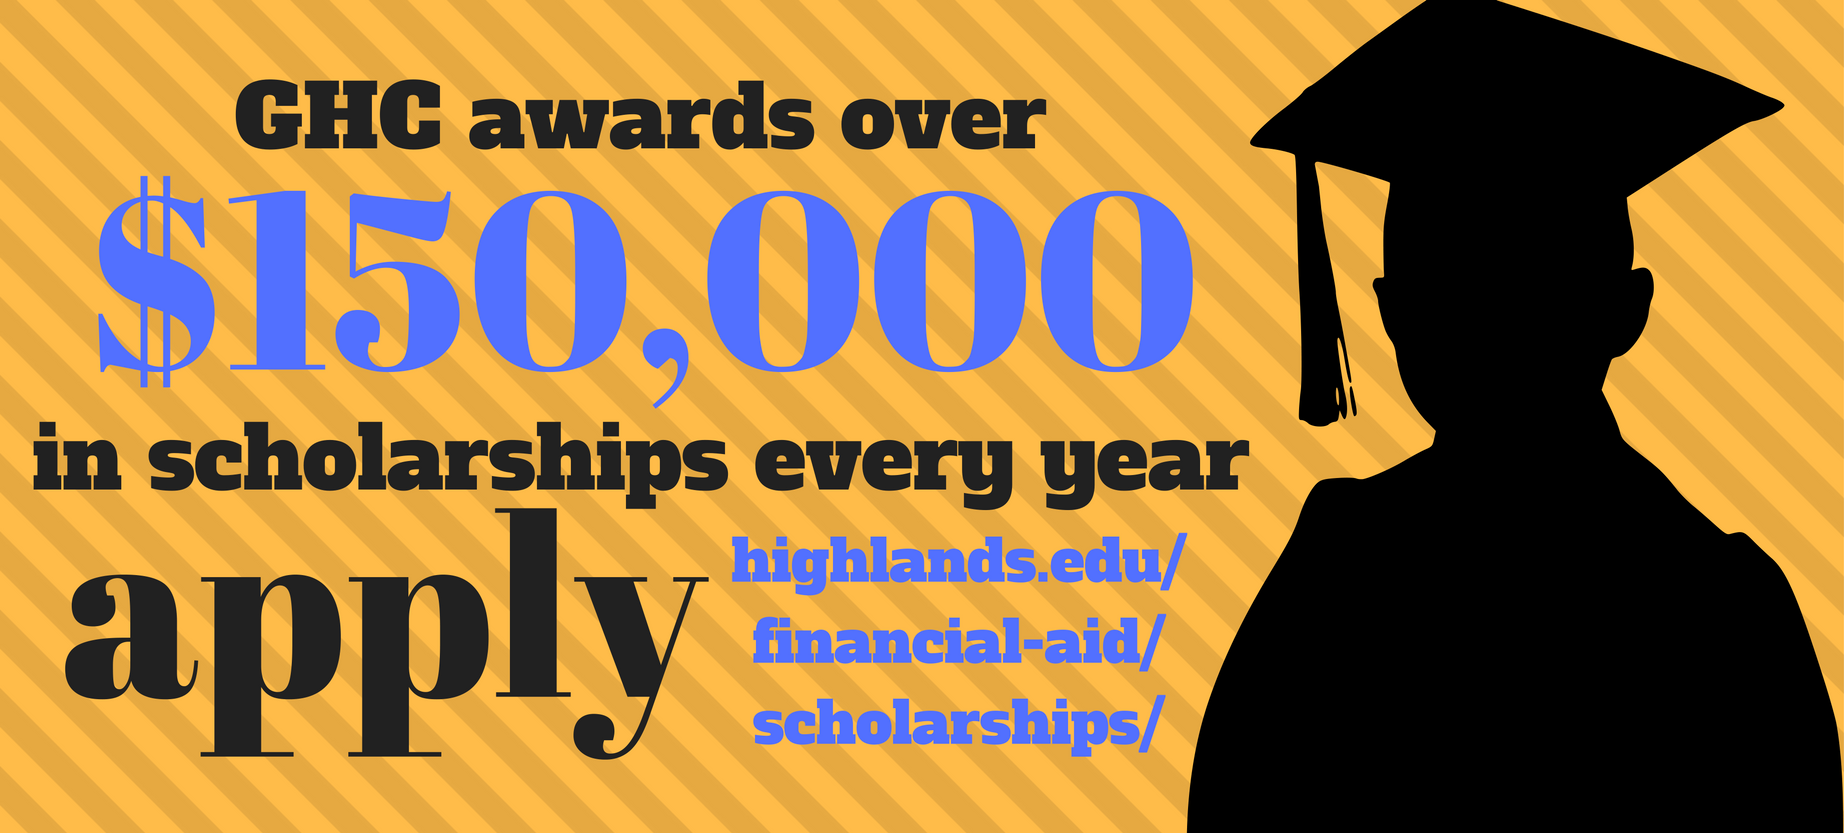 GHC Awards over $150,000 in scholarships every year. Apply!